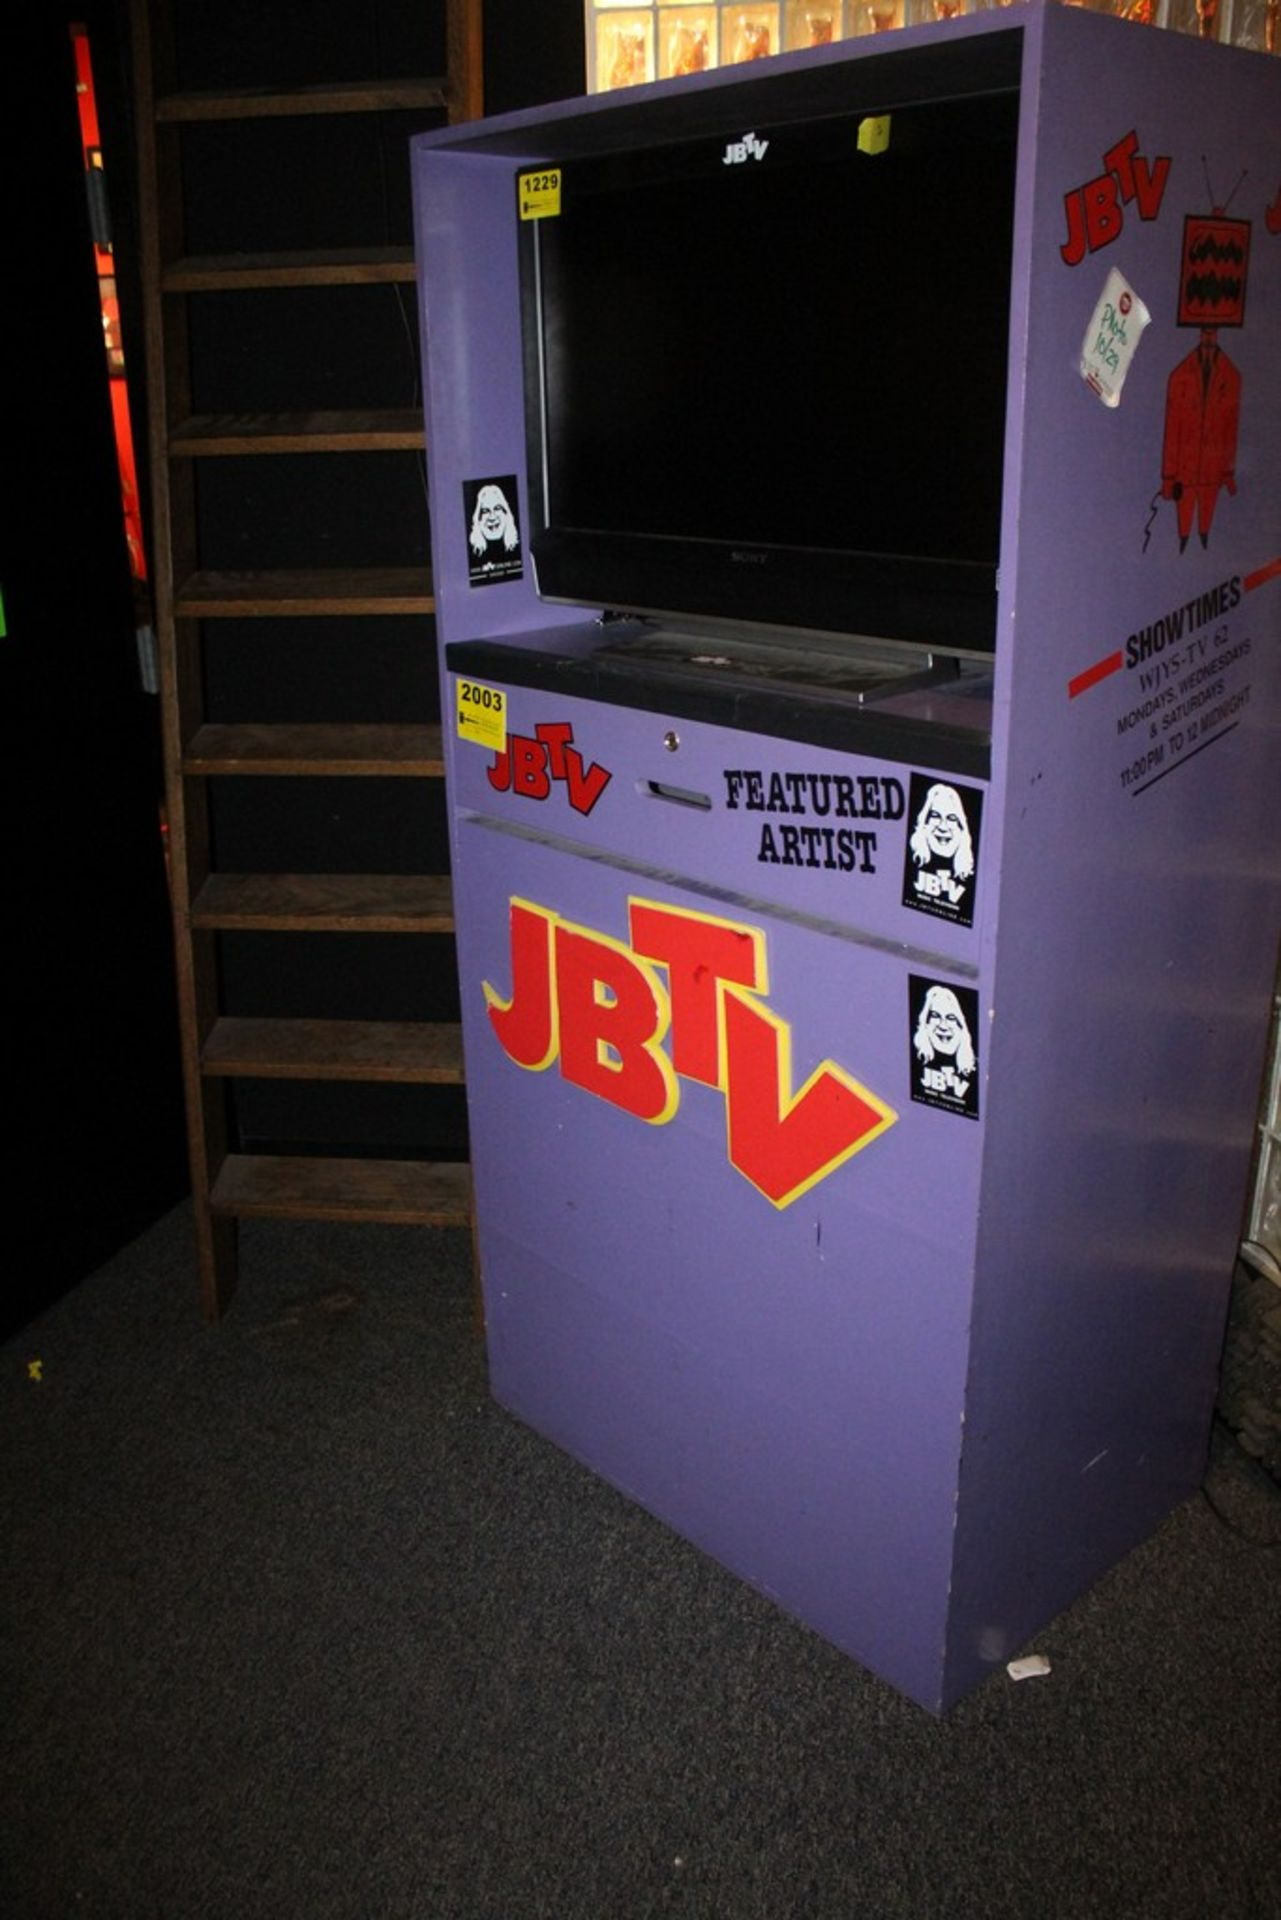 Lot 2003 - JBTV Custom Entertainment Center